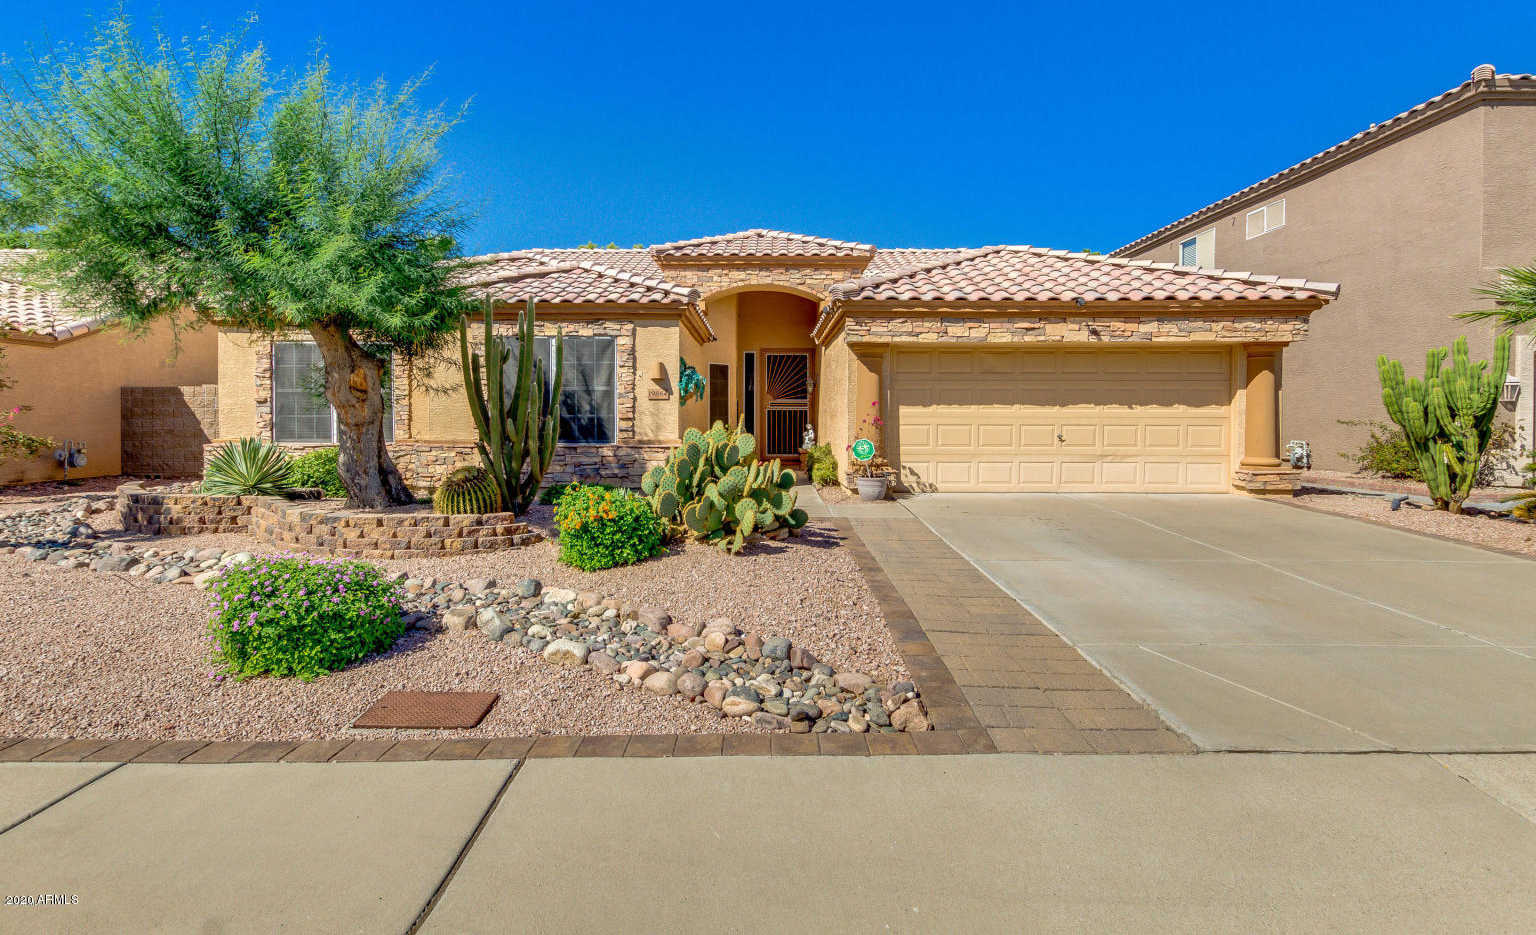 $394,500 - 3Br/2Ba - Home for Sale in Arrowhead Heights, Glendale